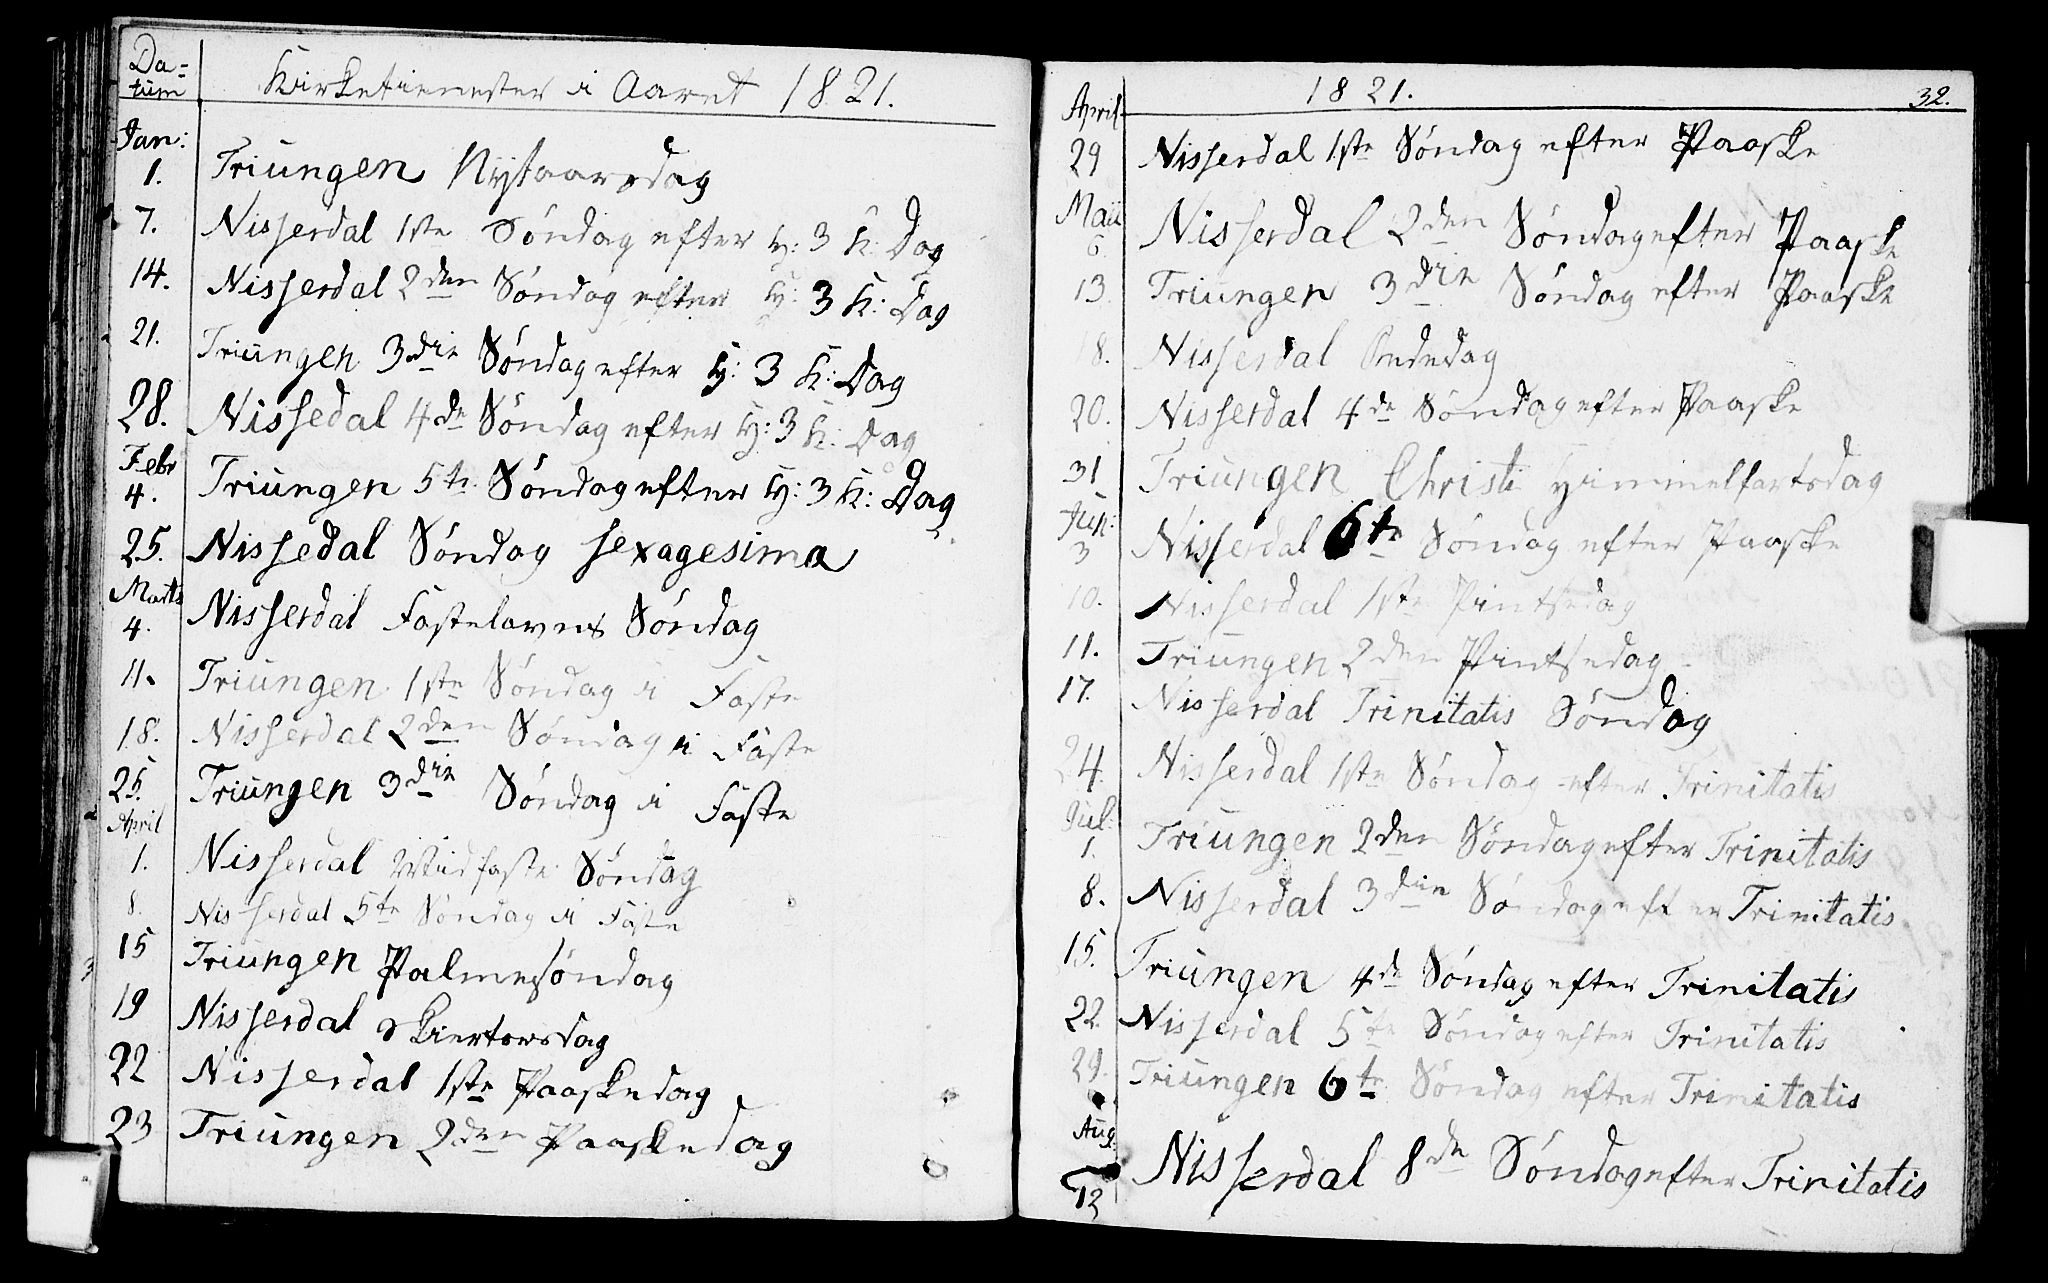 SAKO, Nissedal kirkebøker, F/Fa/L0001: Parish register (official) no. I 1, 1811-1814, p. 32